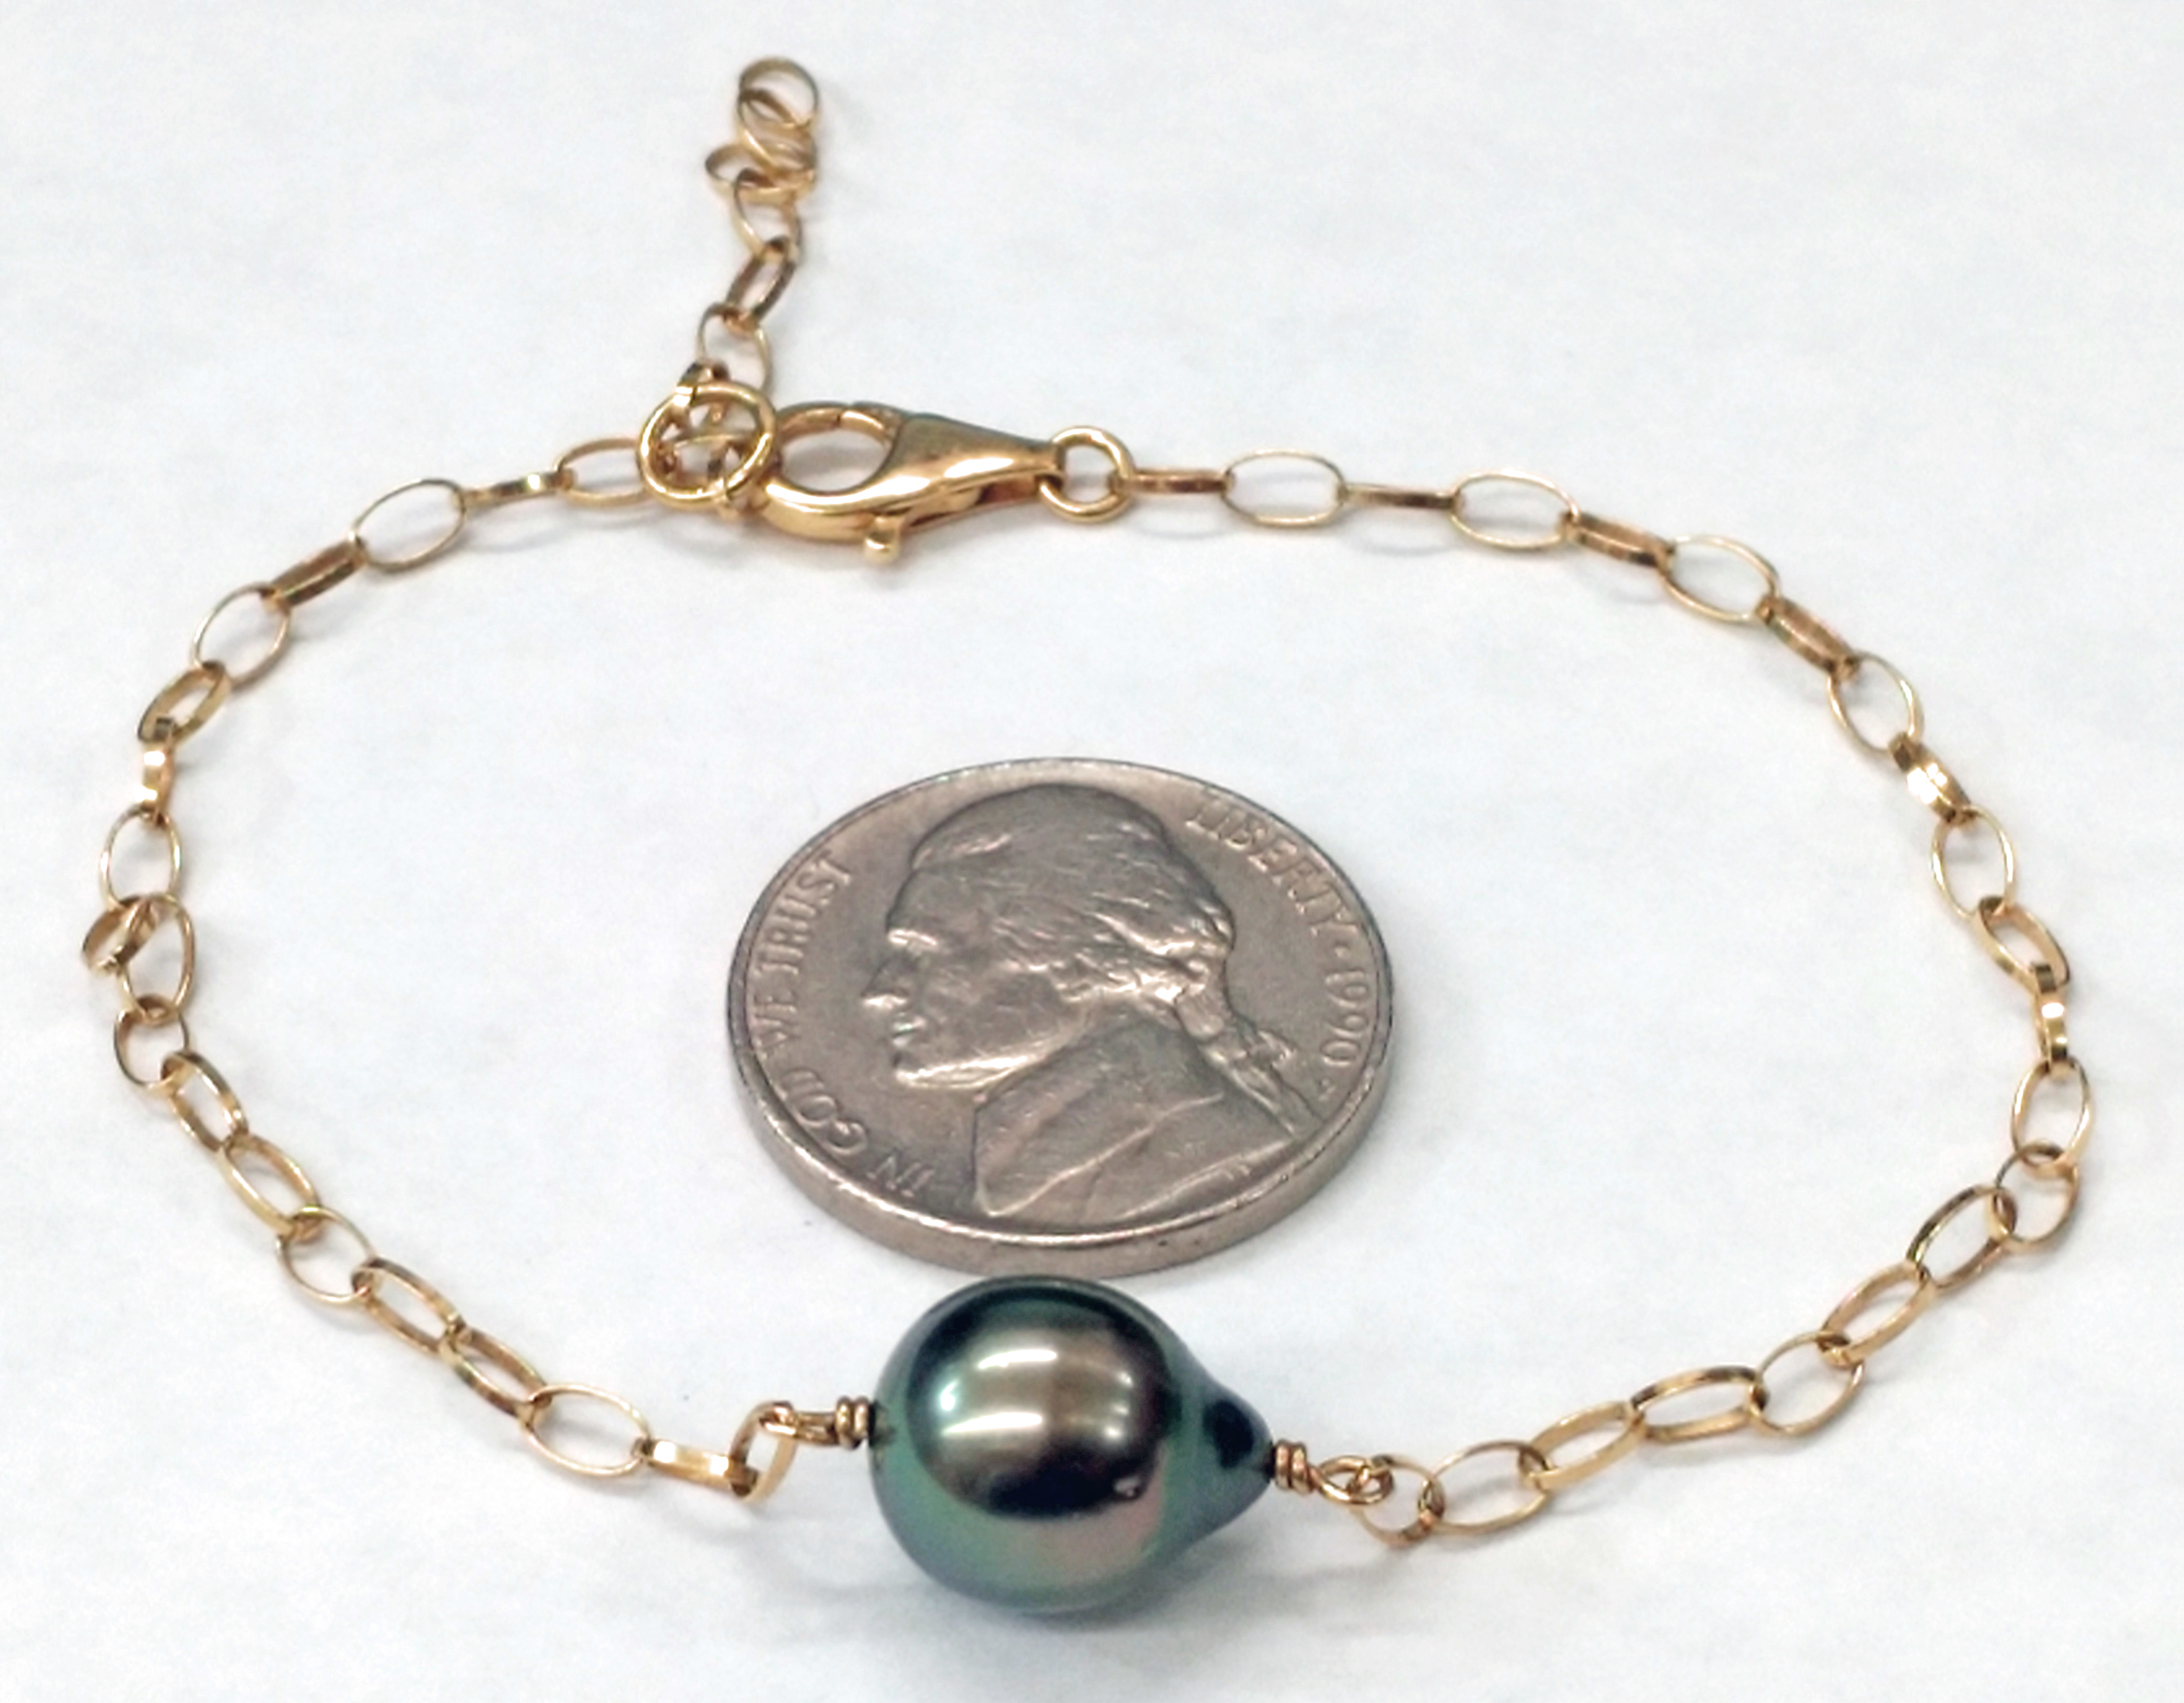 10mm Black Baroque Pearl and 14kt Yellow Gold Adjustable 9